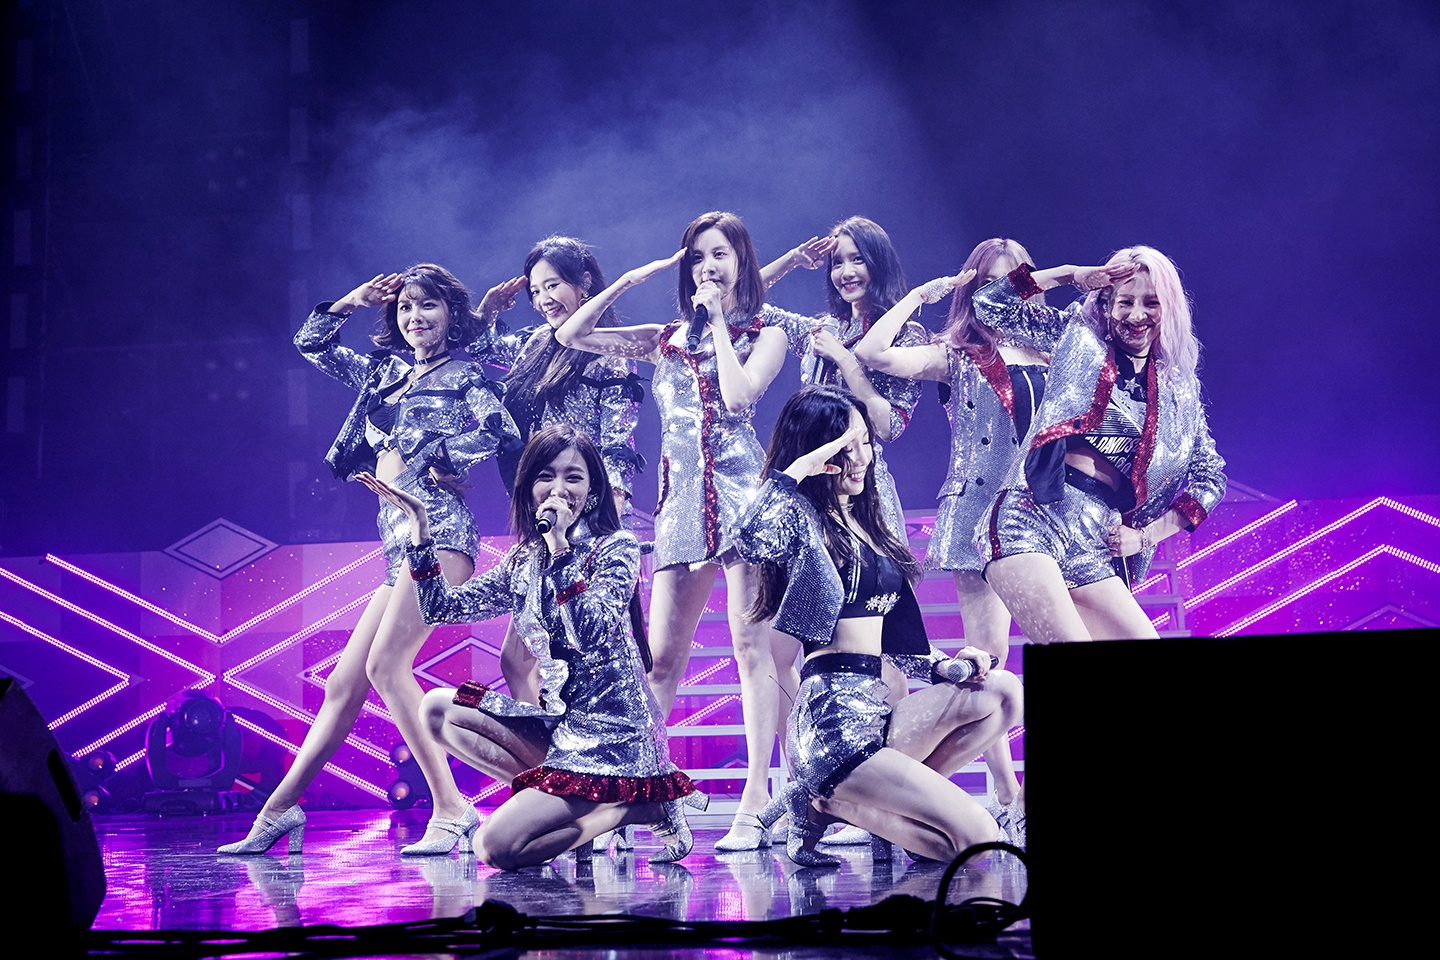 Here Are The Average Ages Of Every Girl Group In 2017 - Koreaboo